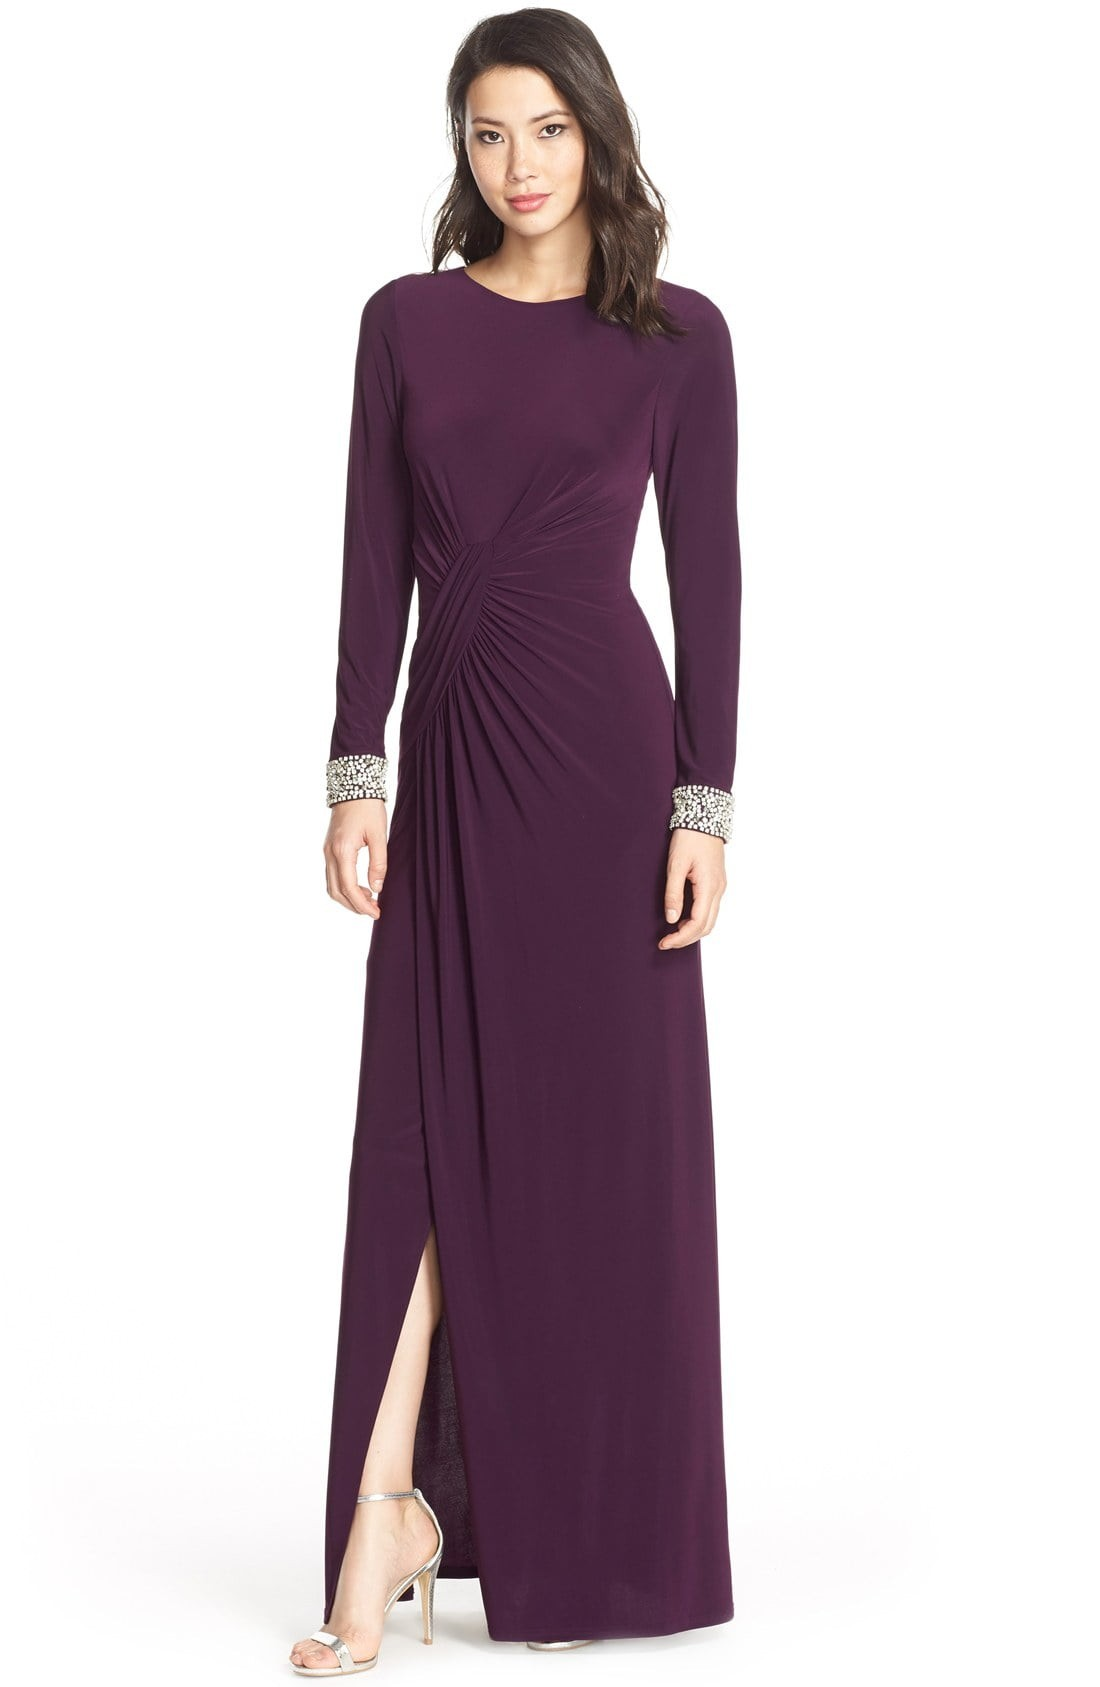 Fall mother of the bride dresses mob dresses for autumn weddings nordstrom ombrellifo Choice Image